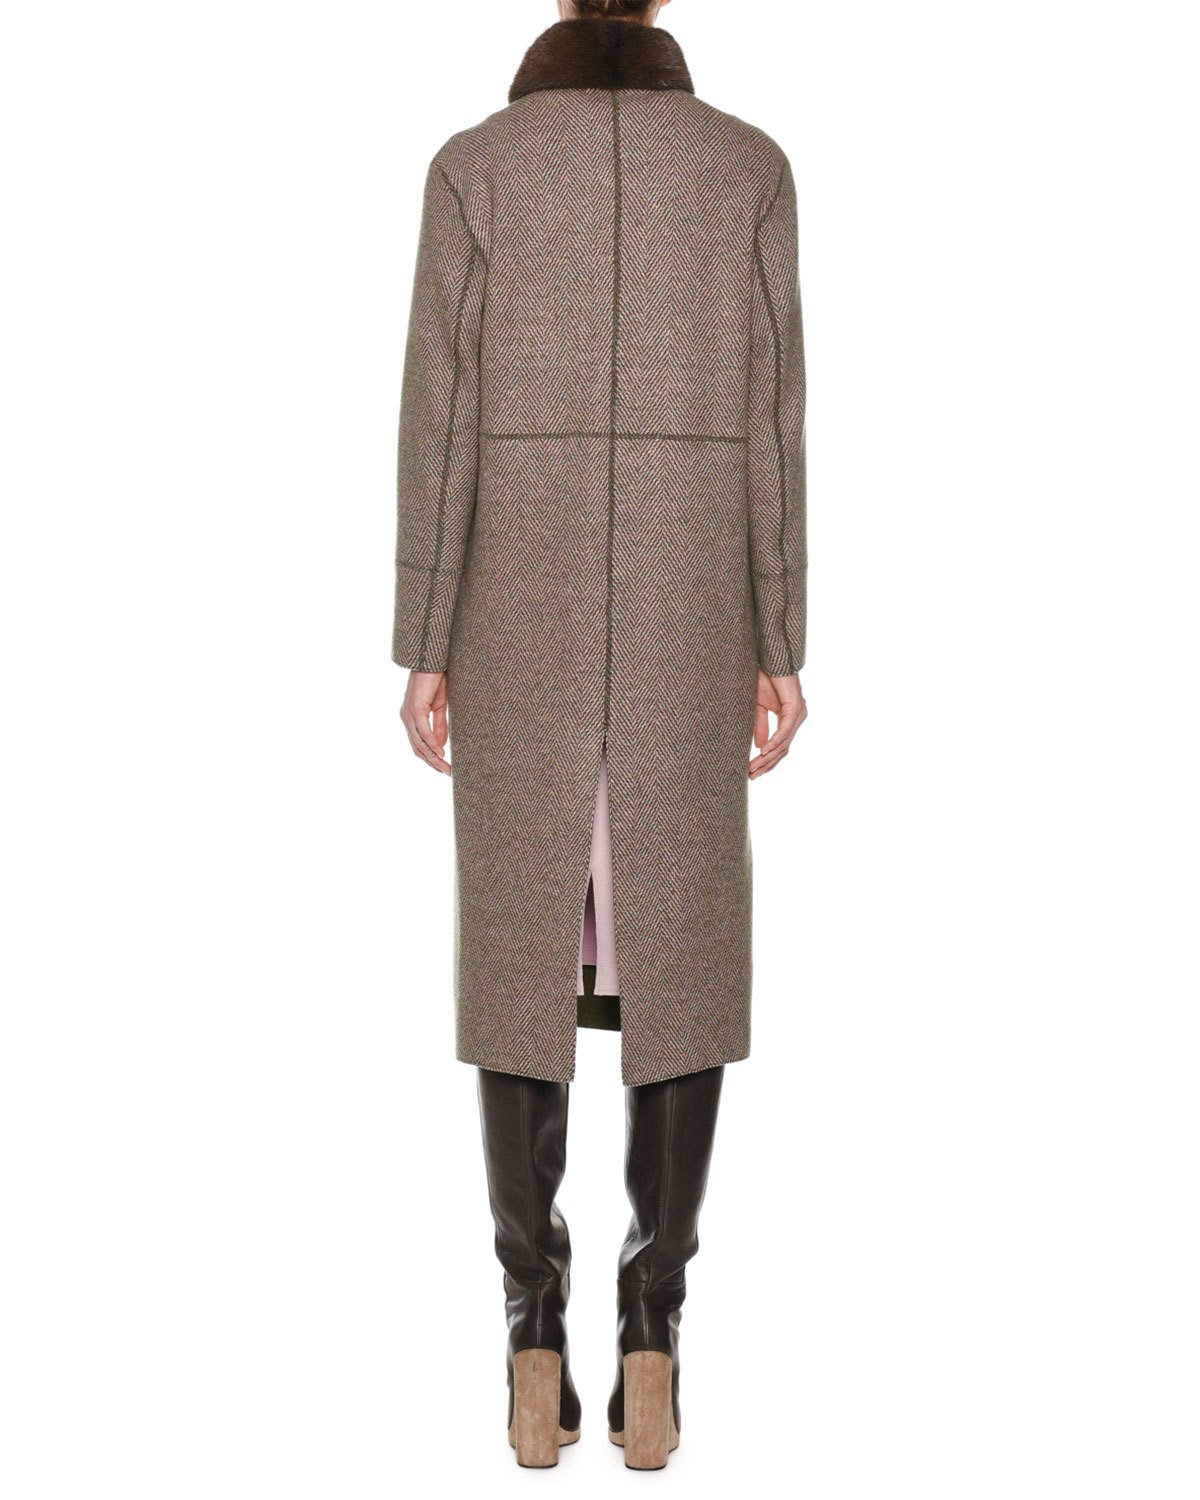 b4da44ca3e Agnona Double-Breasted Herringbone Cashmere Military Coat with Fur Collar